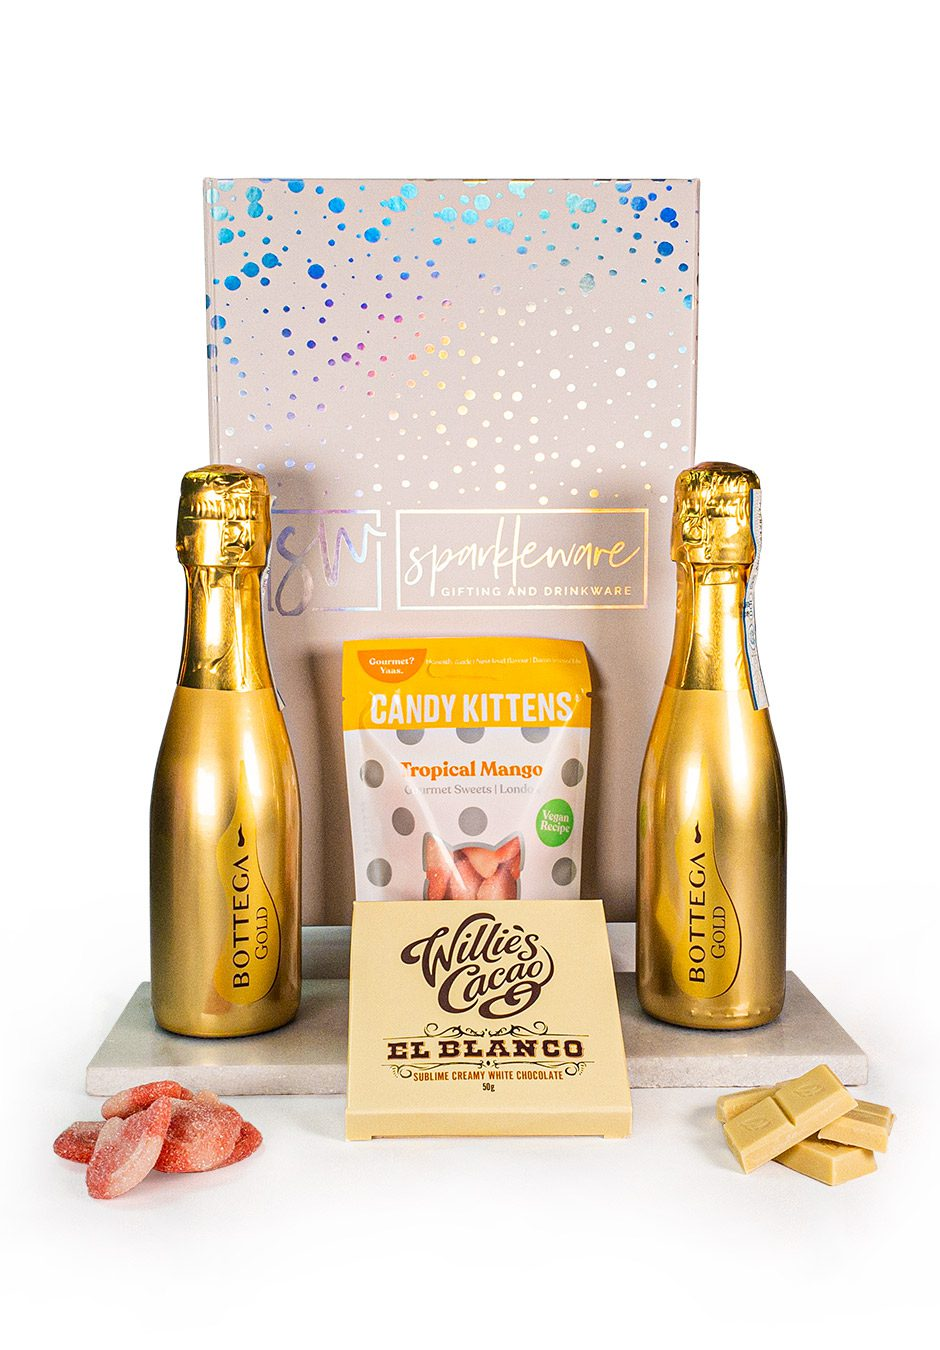 20cl Gold Bottega x 2   Candy Kittens   Willies Cacao   Sparkleware Gift Set   Keico Drinks